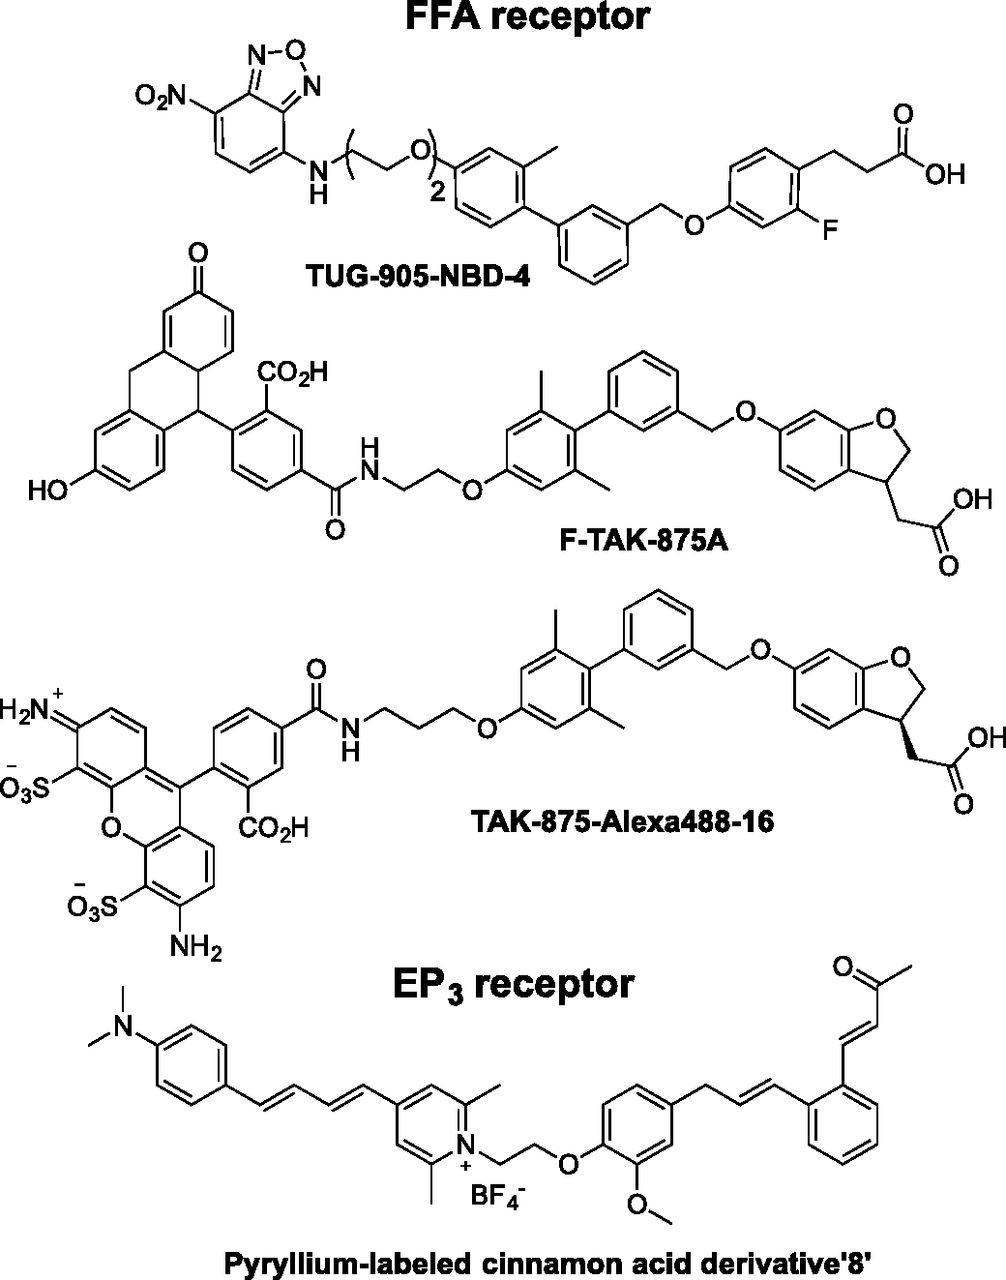 Chemical Tools for Studying Lipid-Binding Class A G Protein